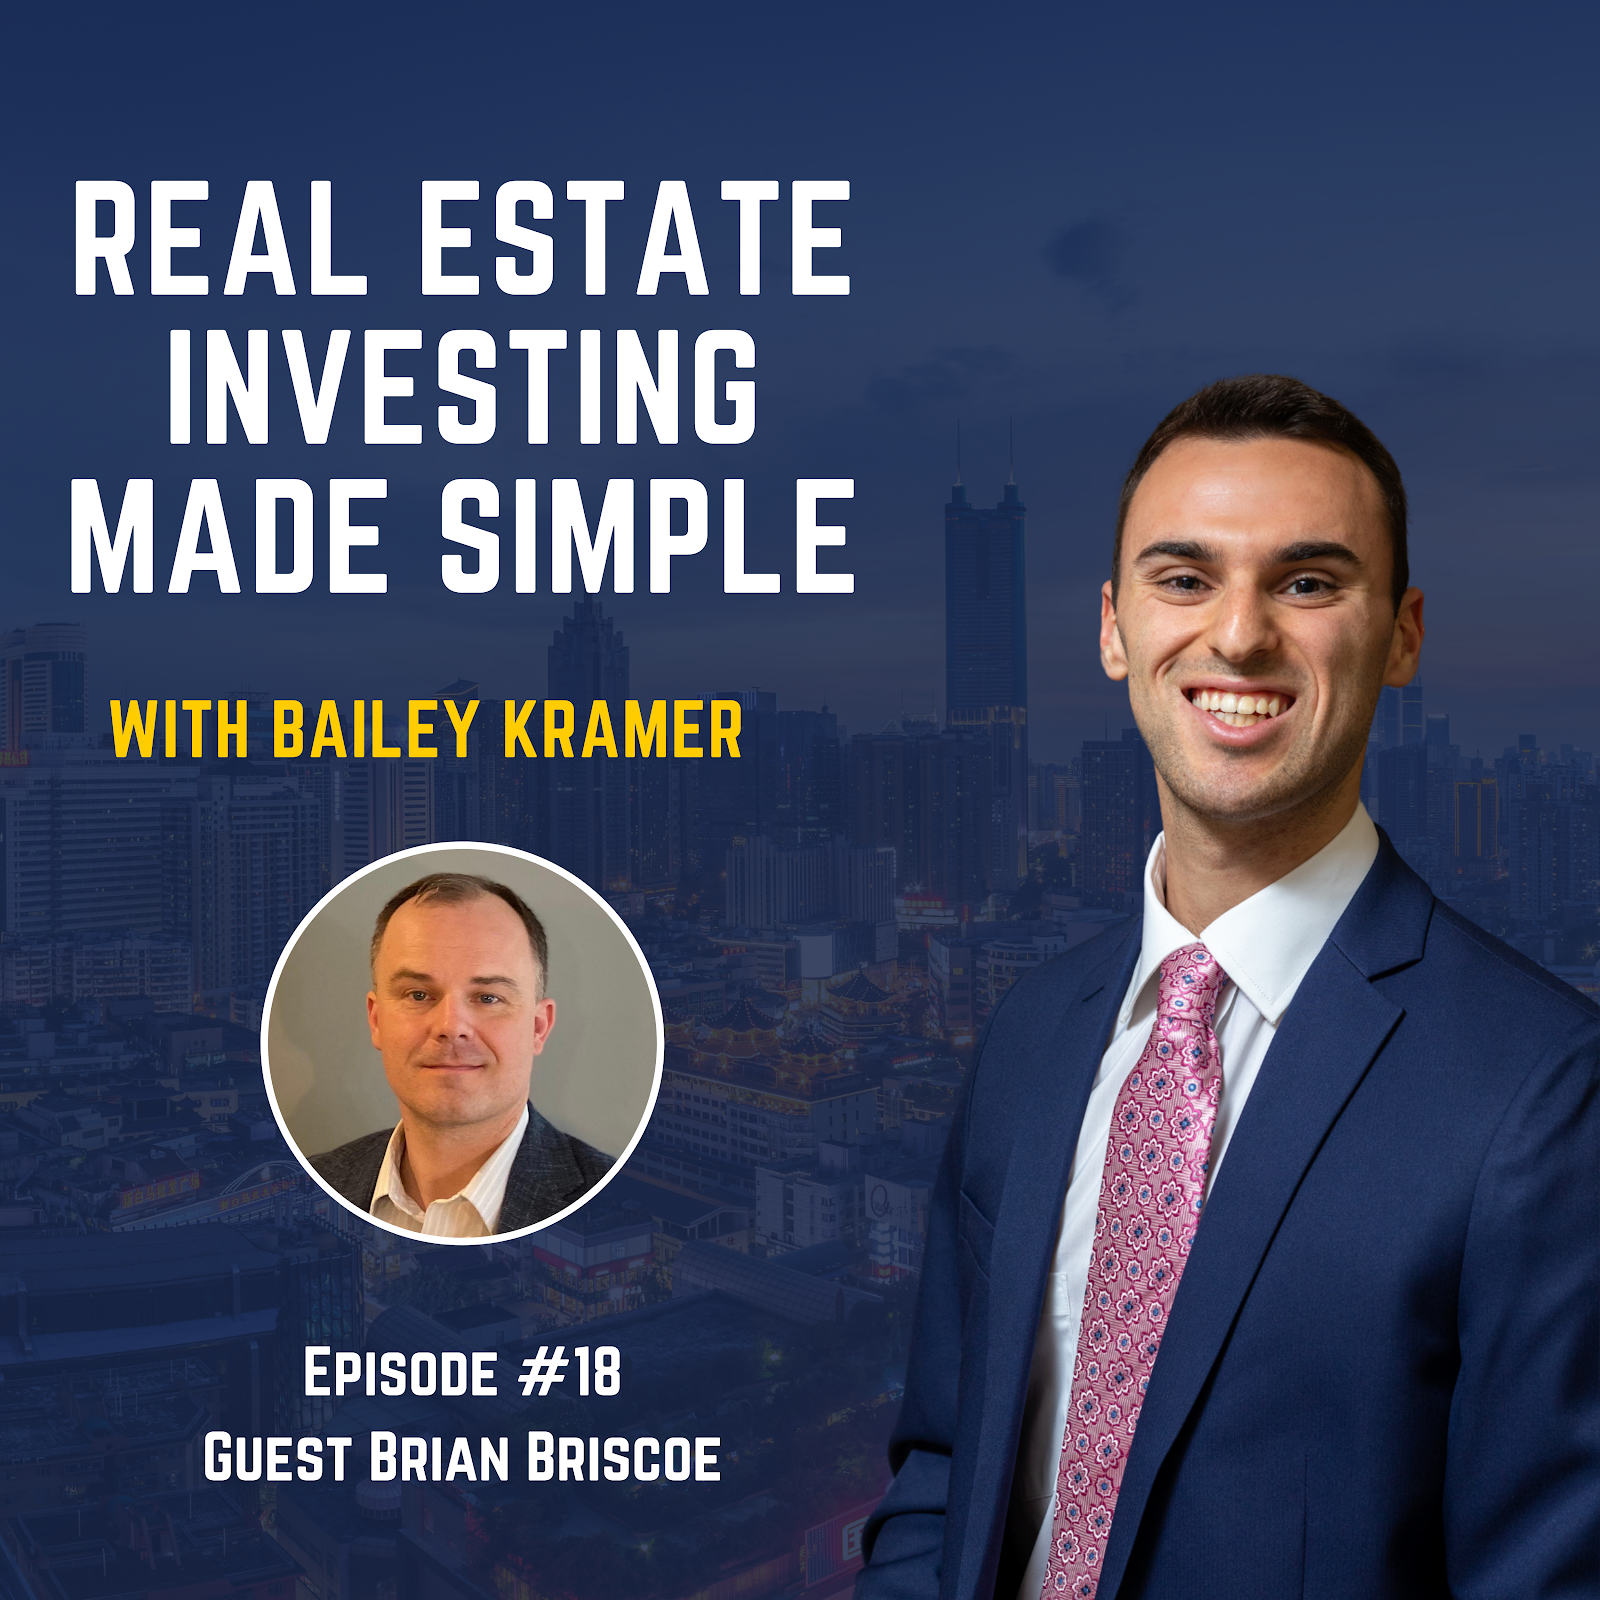 Brian Briscoe on Real Estate Investing Made Simple with Bailey Kramer